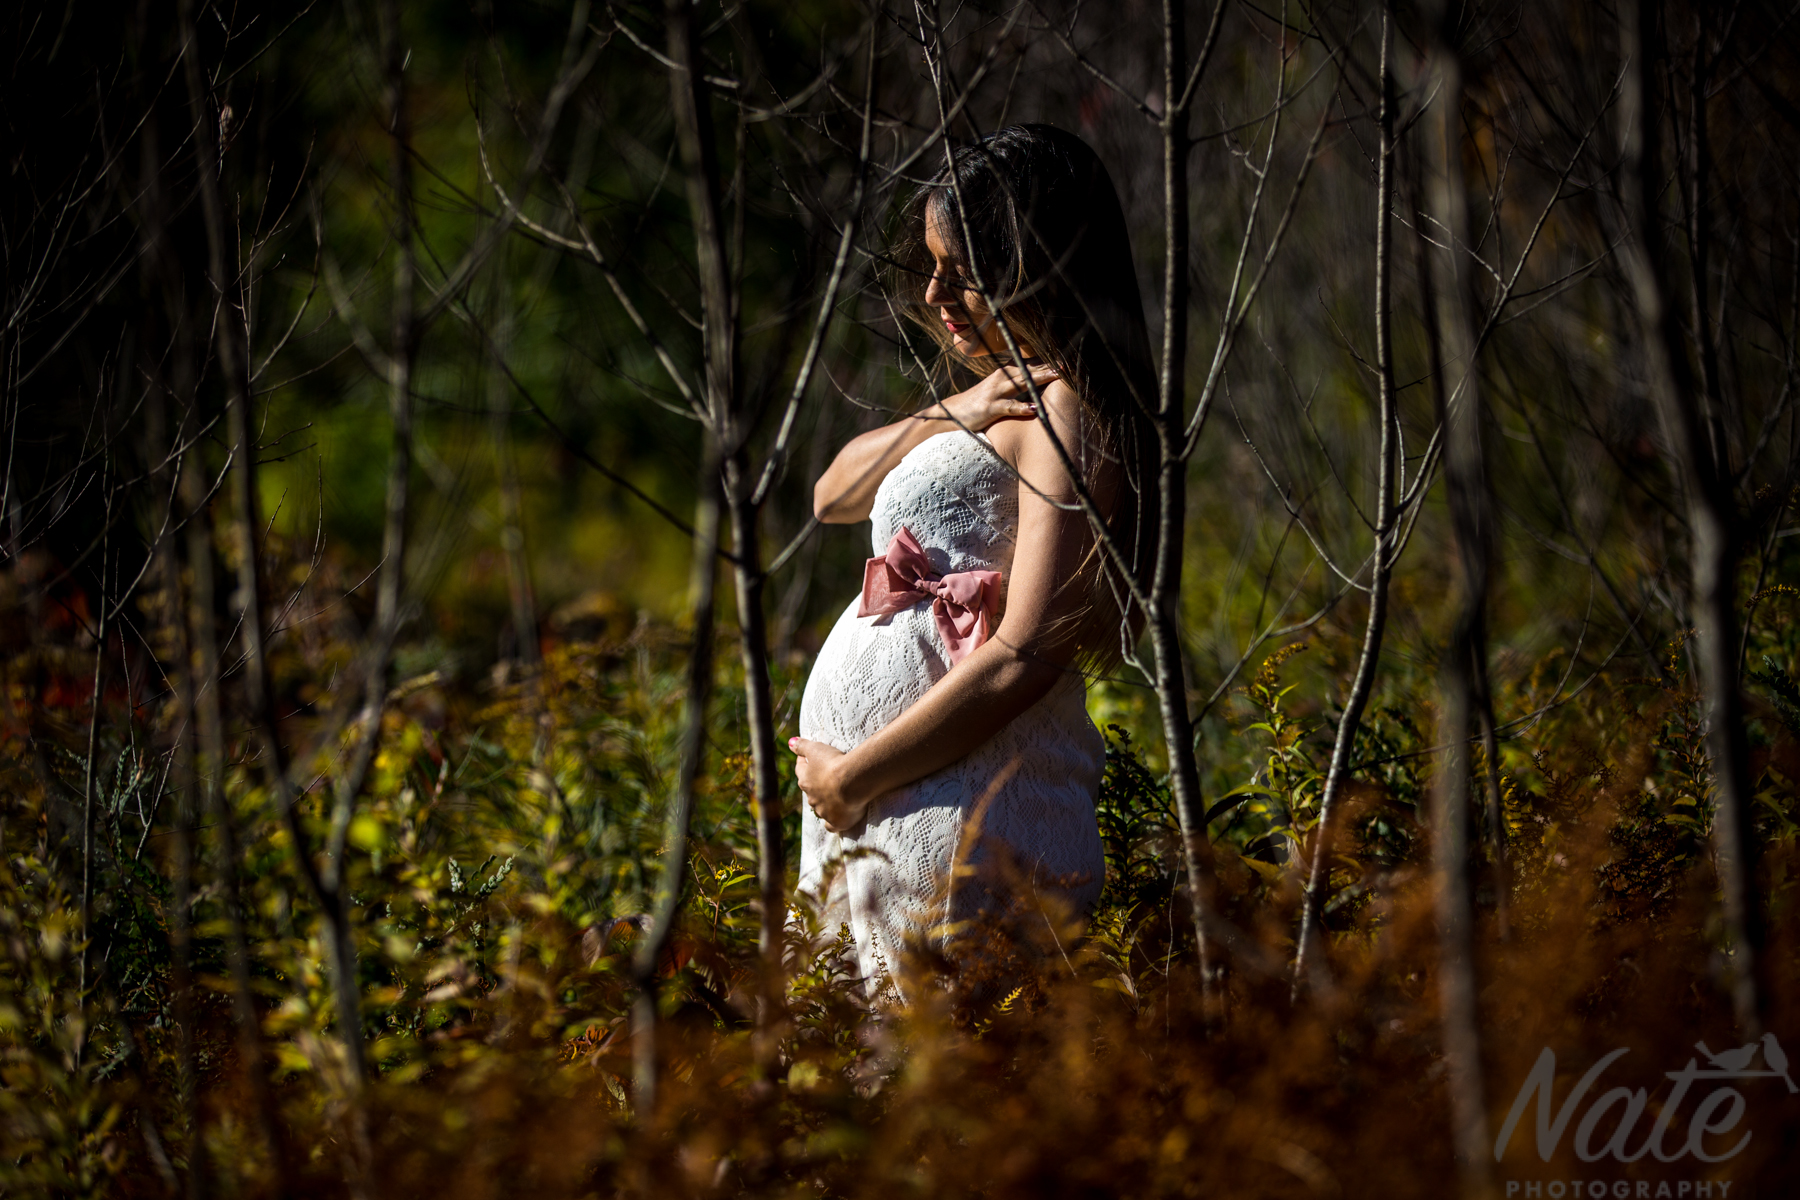 Rich and Amanda maternity photos at Martin Burns Wildlife Management Area. by Nate Photography